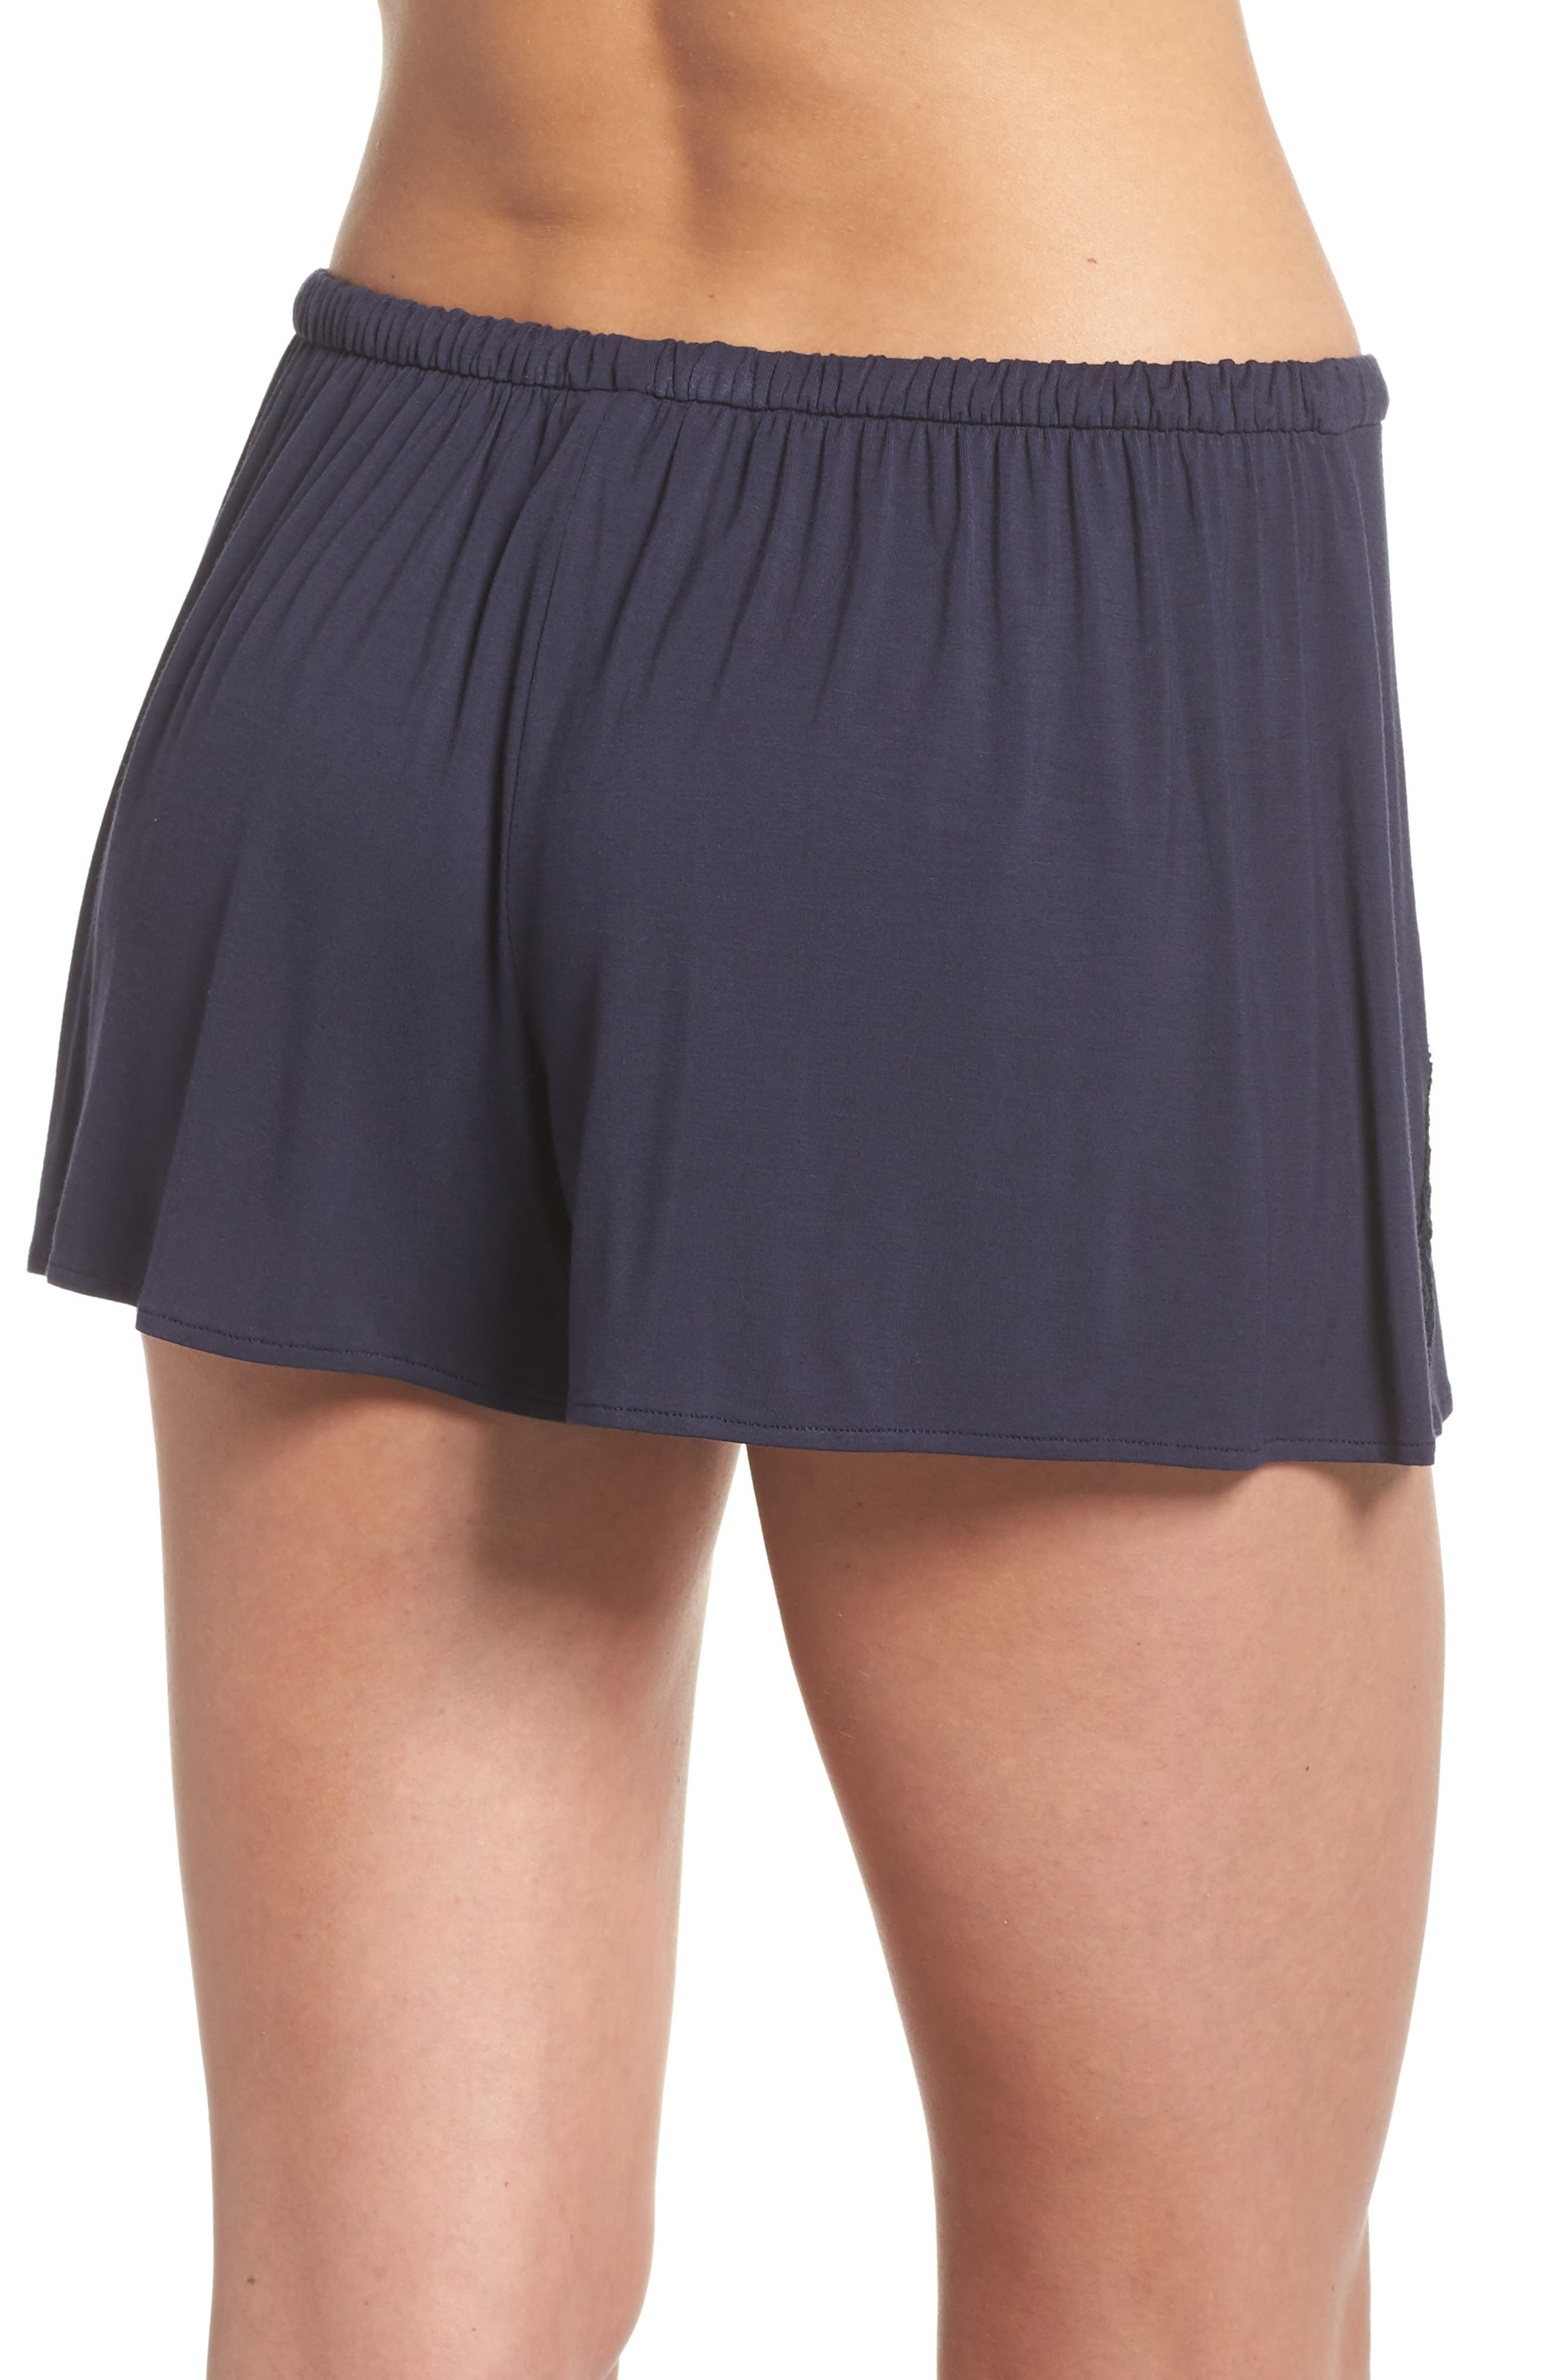 Feathers Essential Pajama Shorts,                             Alternate thumbnail 2, color,                             438